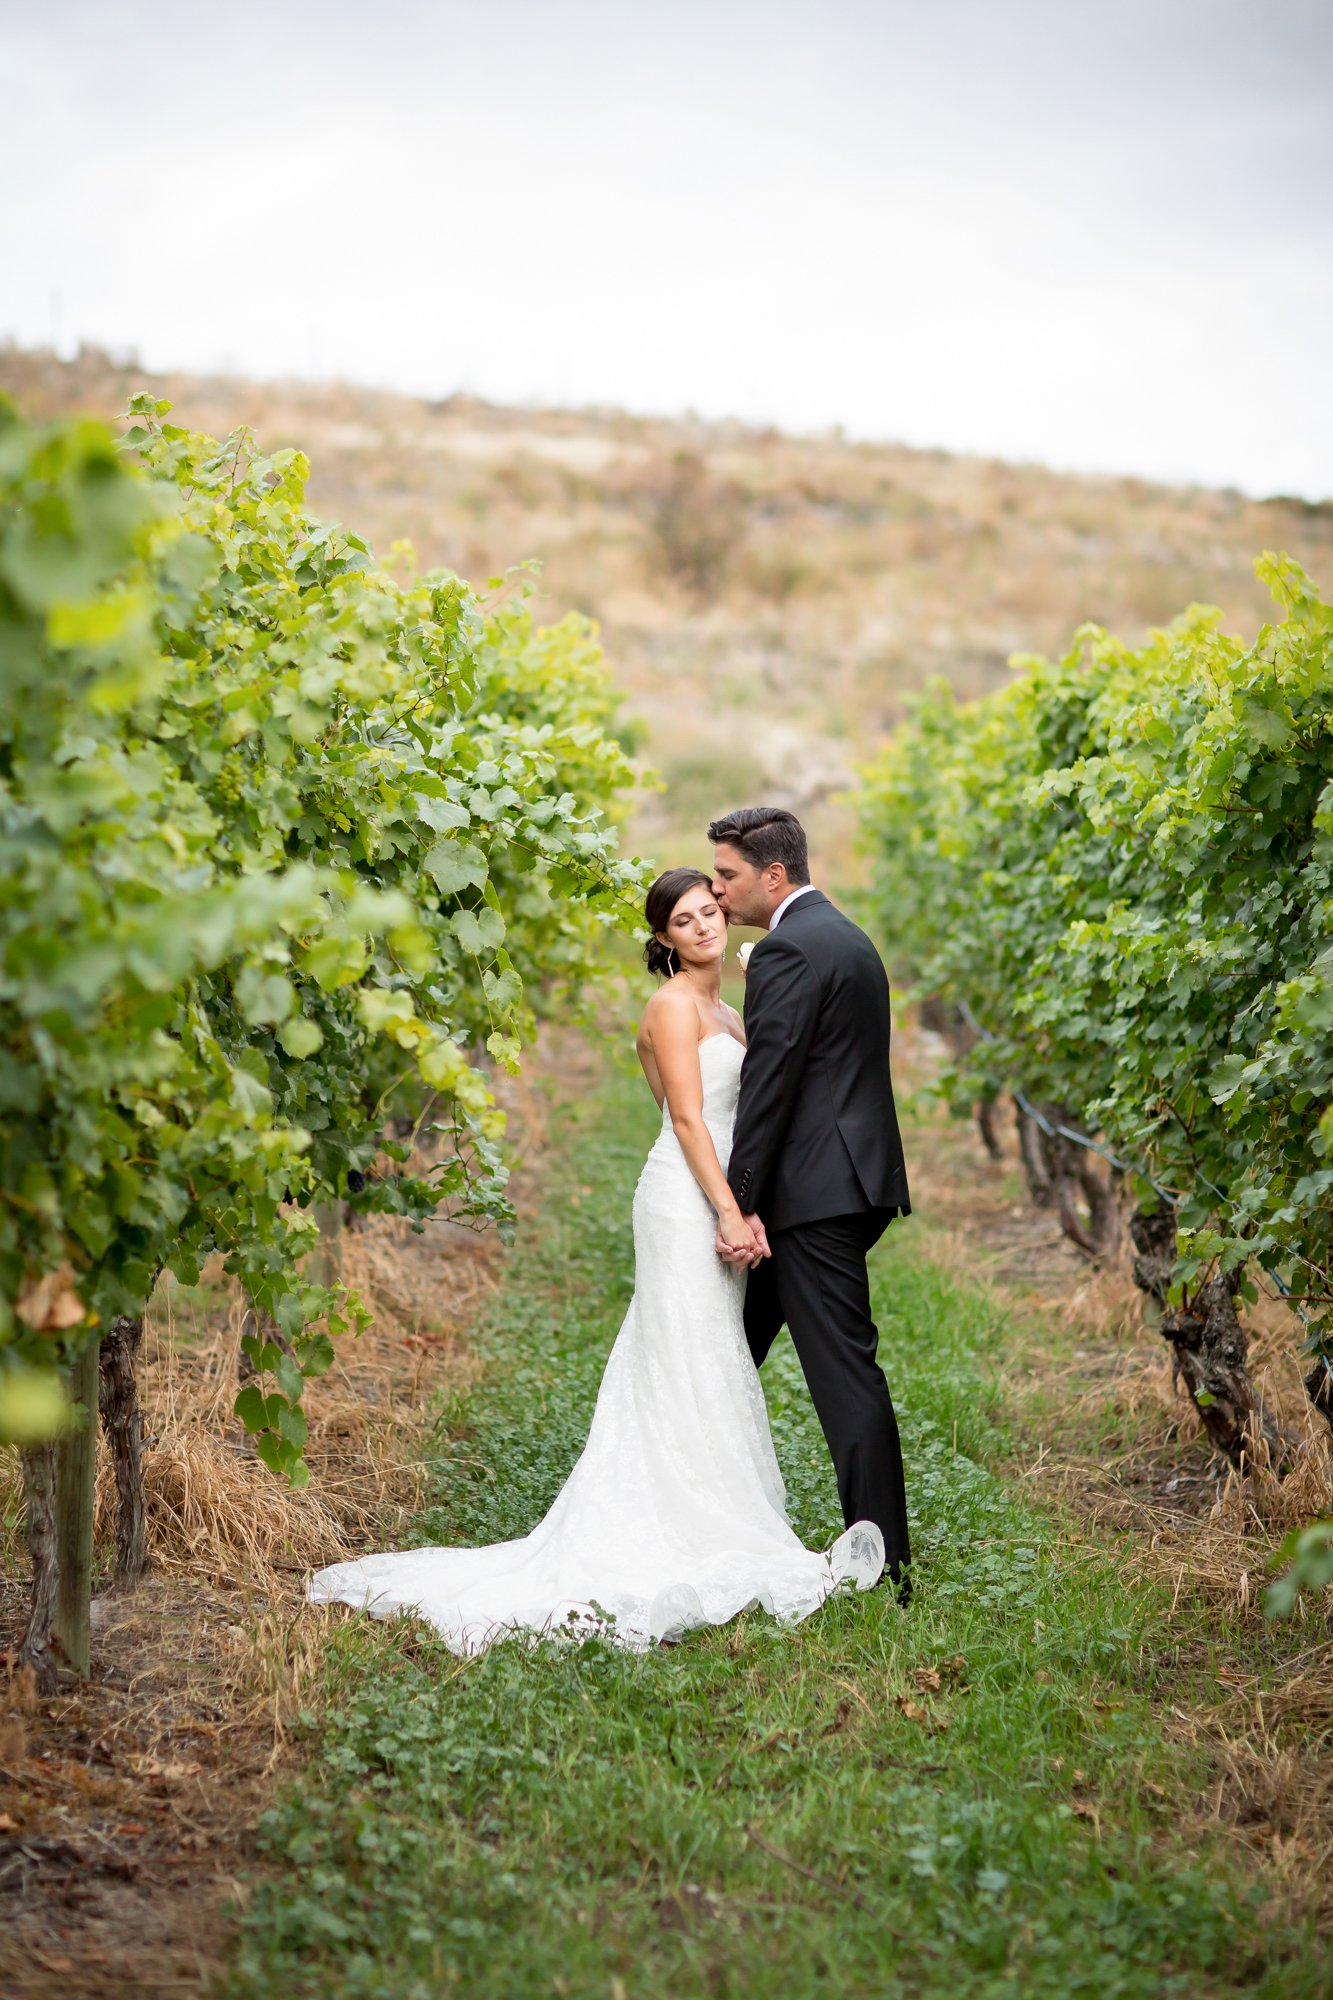 A groom kissing his bride on the cheep in a vineyard